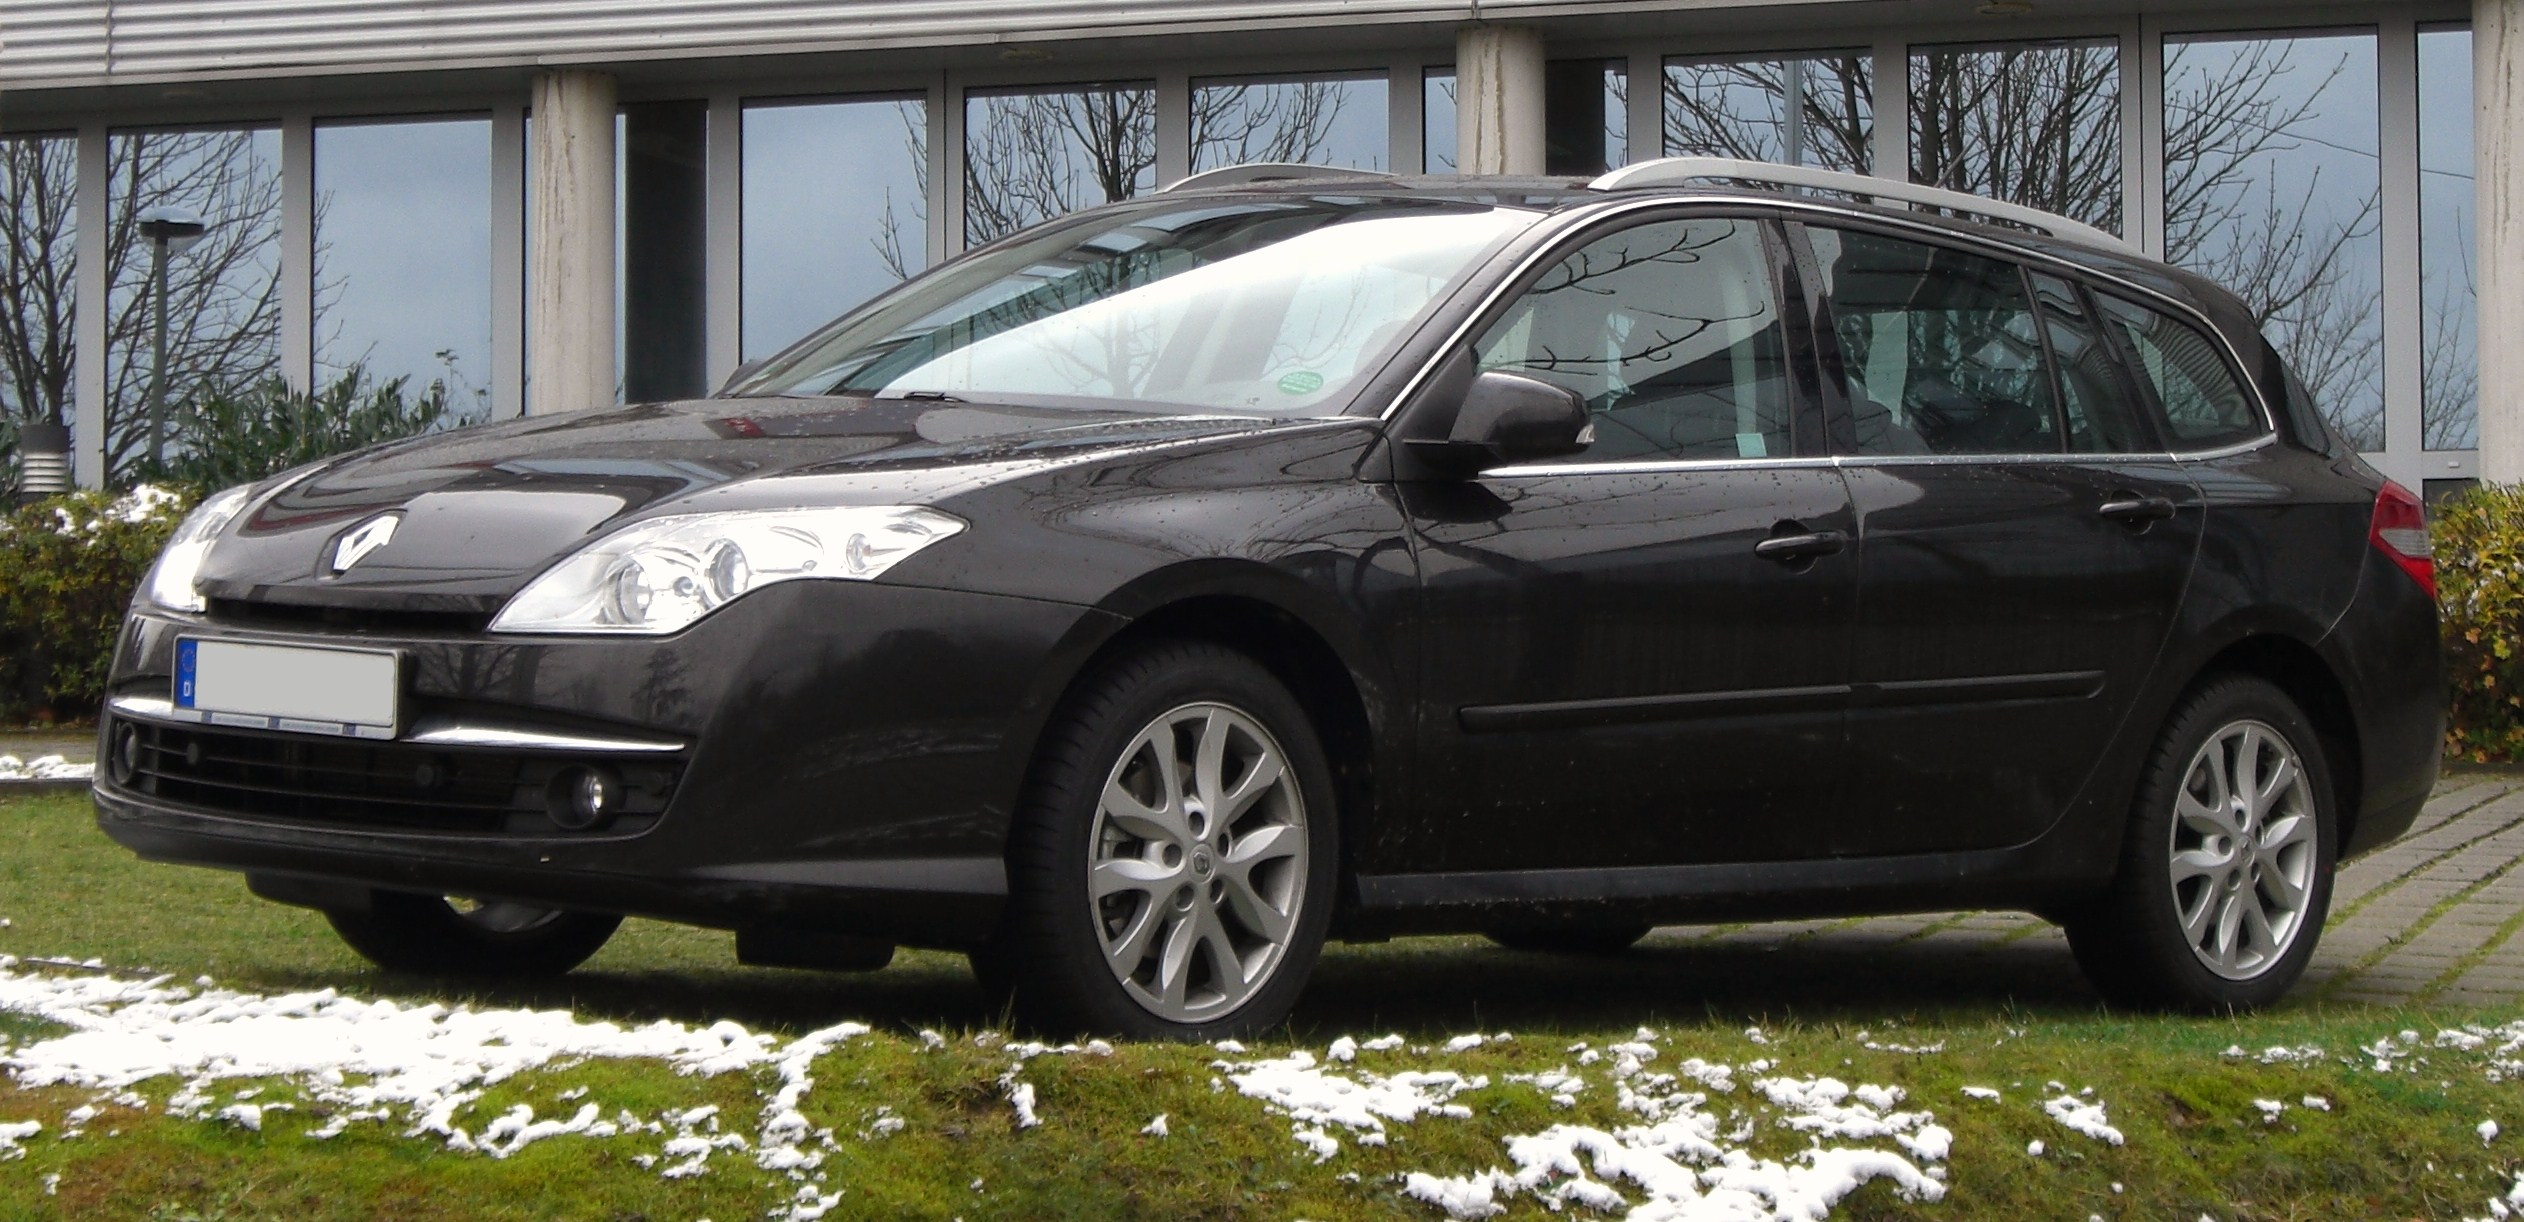 file renault laguna iii grandtour seit 2007 front 1 mj jpg wikimedia commons. Black Bedroom Furniture Sets. Home Design Ideas